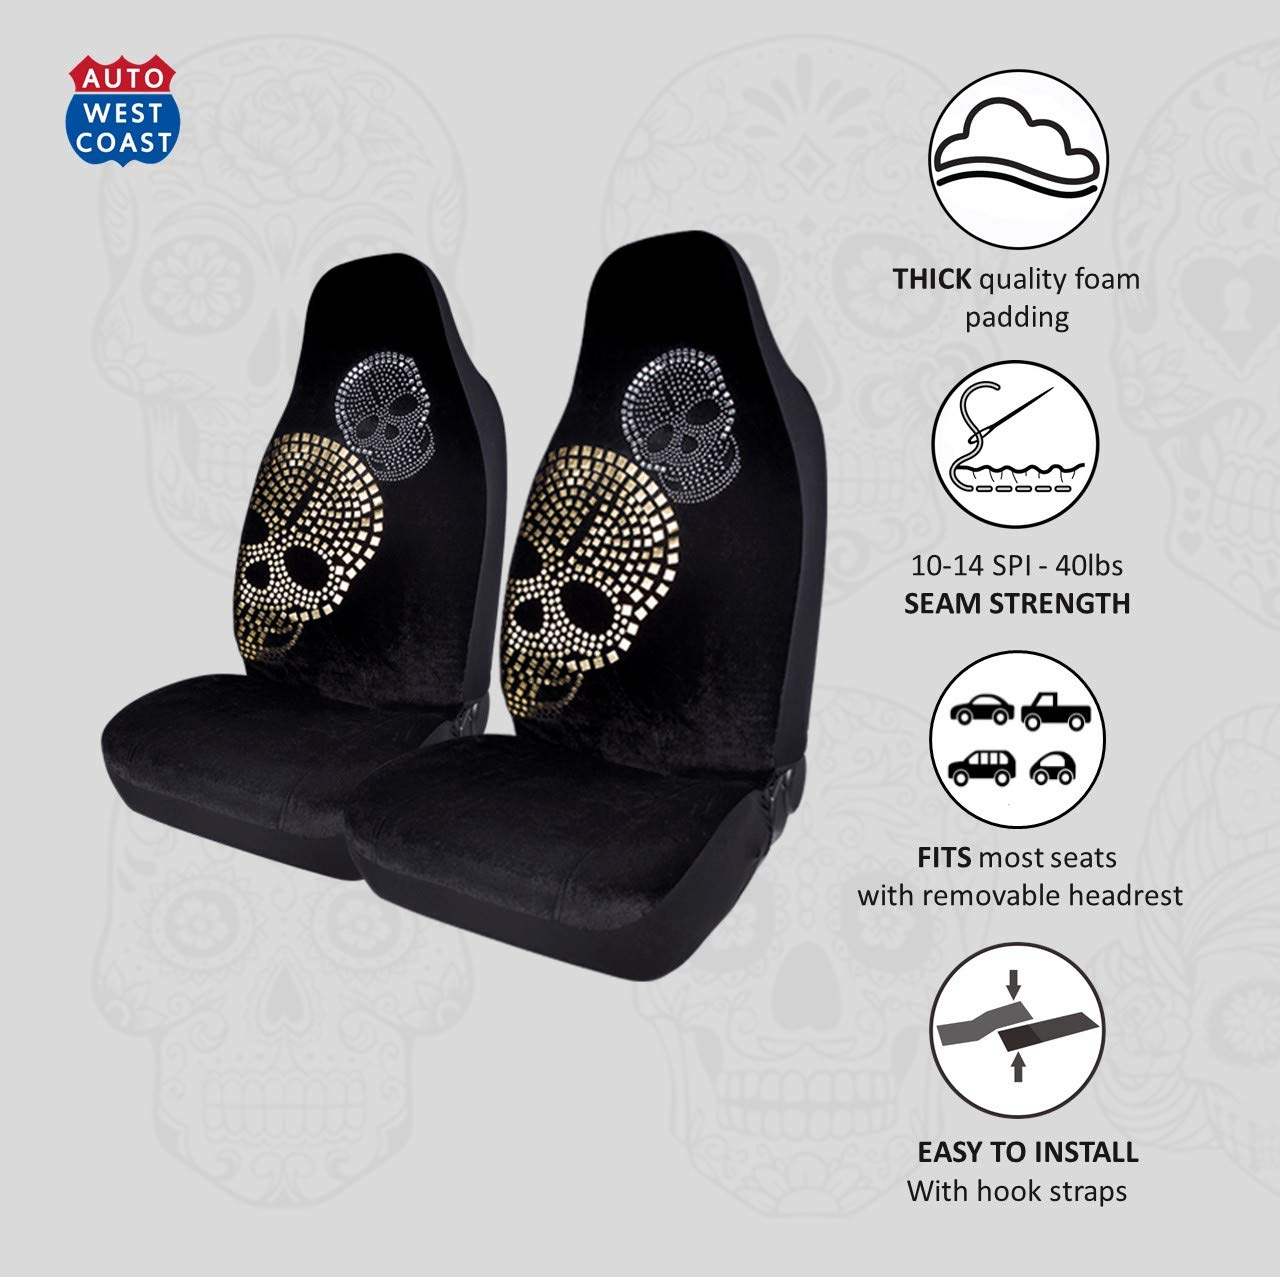 Pleasant West Coast Auto Car Seat Covers For Cars Trucks Vans Suvs And Crossovers Fashion Foil Print Diamond Skull Beads Airbag Compatible Gold Skull Forskolin Free Trial Chair Design Images Forskolin Free Trialorg